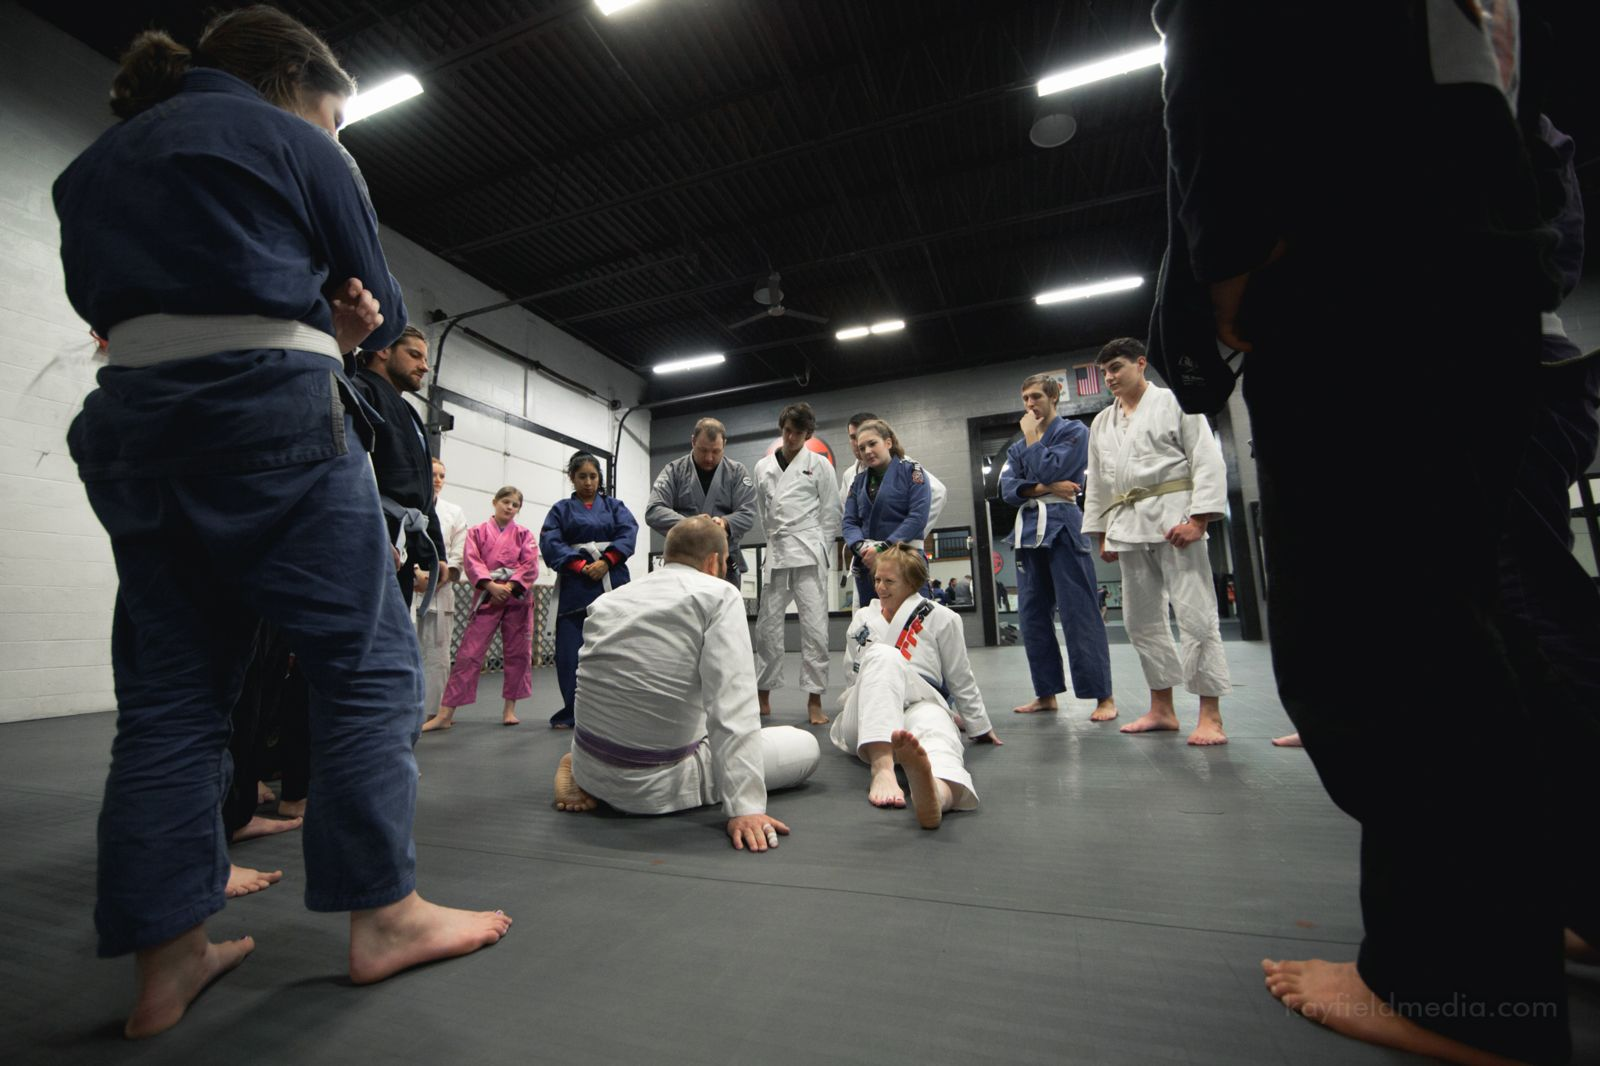 Brazilian Jiu Jitsu Classes Downingtown, Exton, West Chester, Lionville, Paoli, Berwyn, Wayne